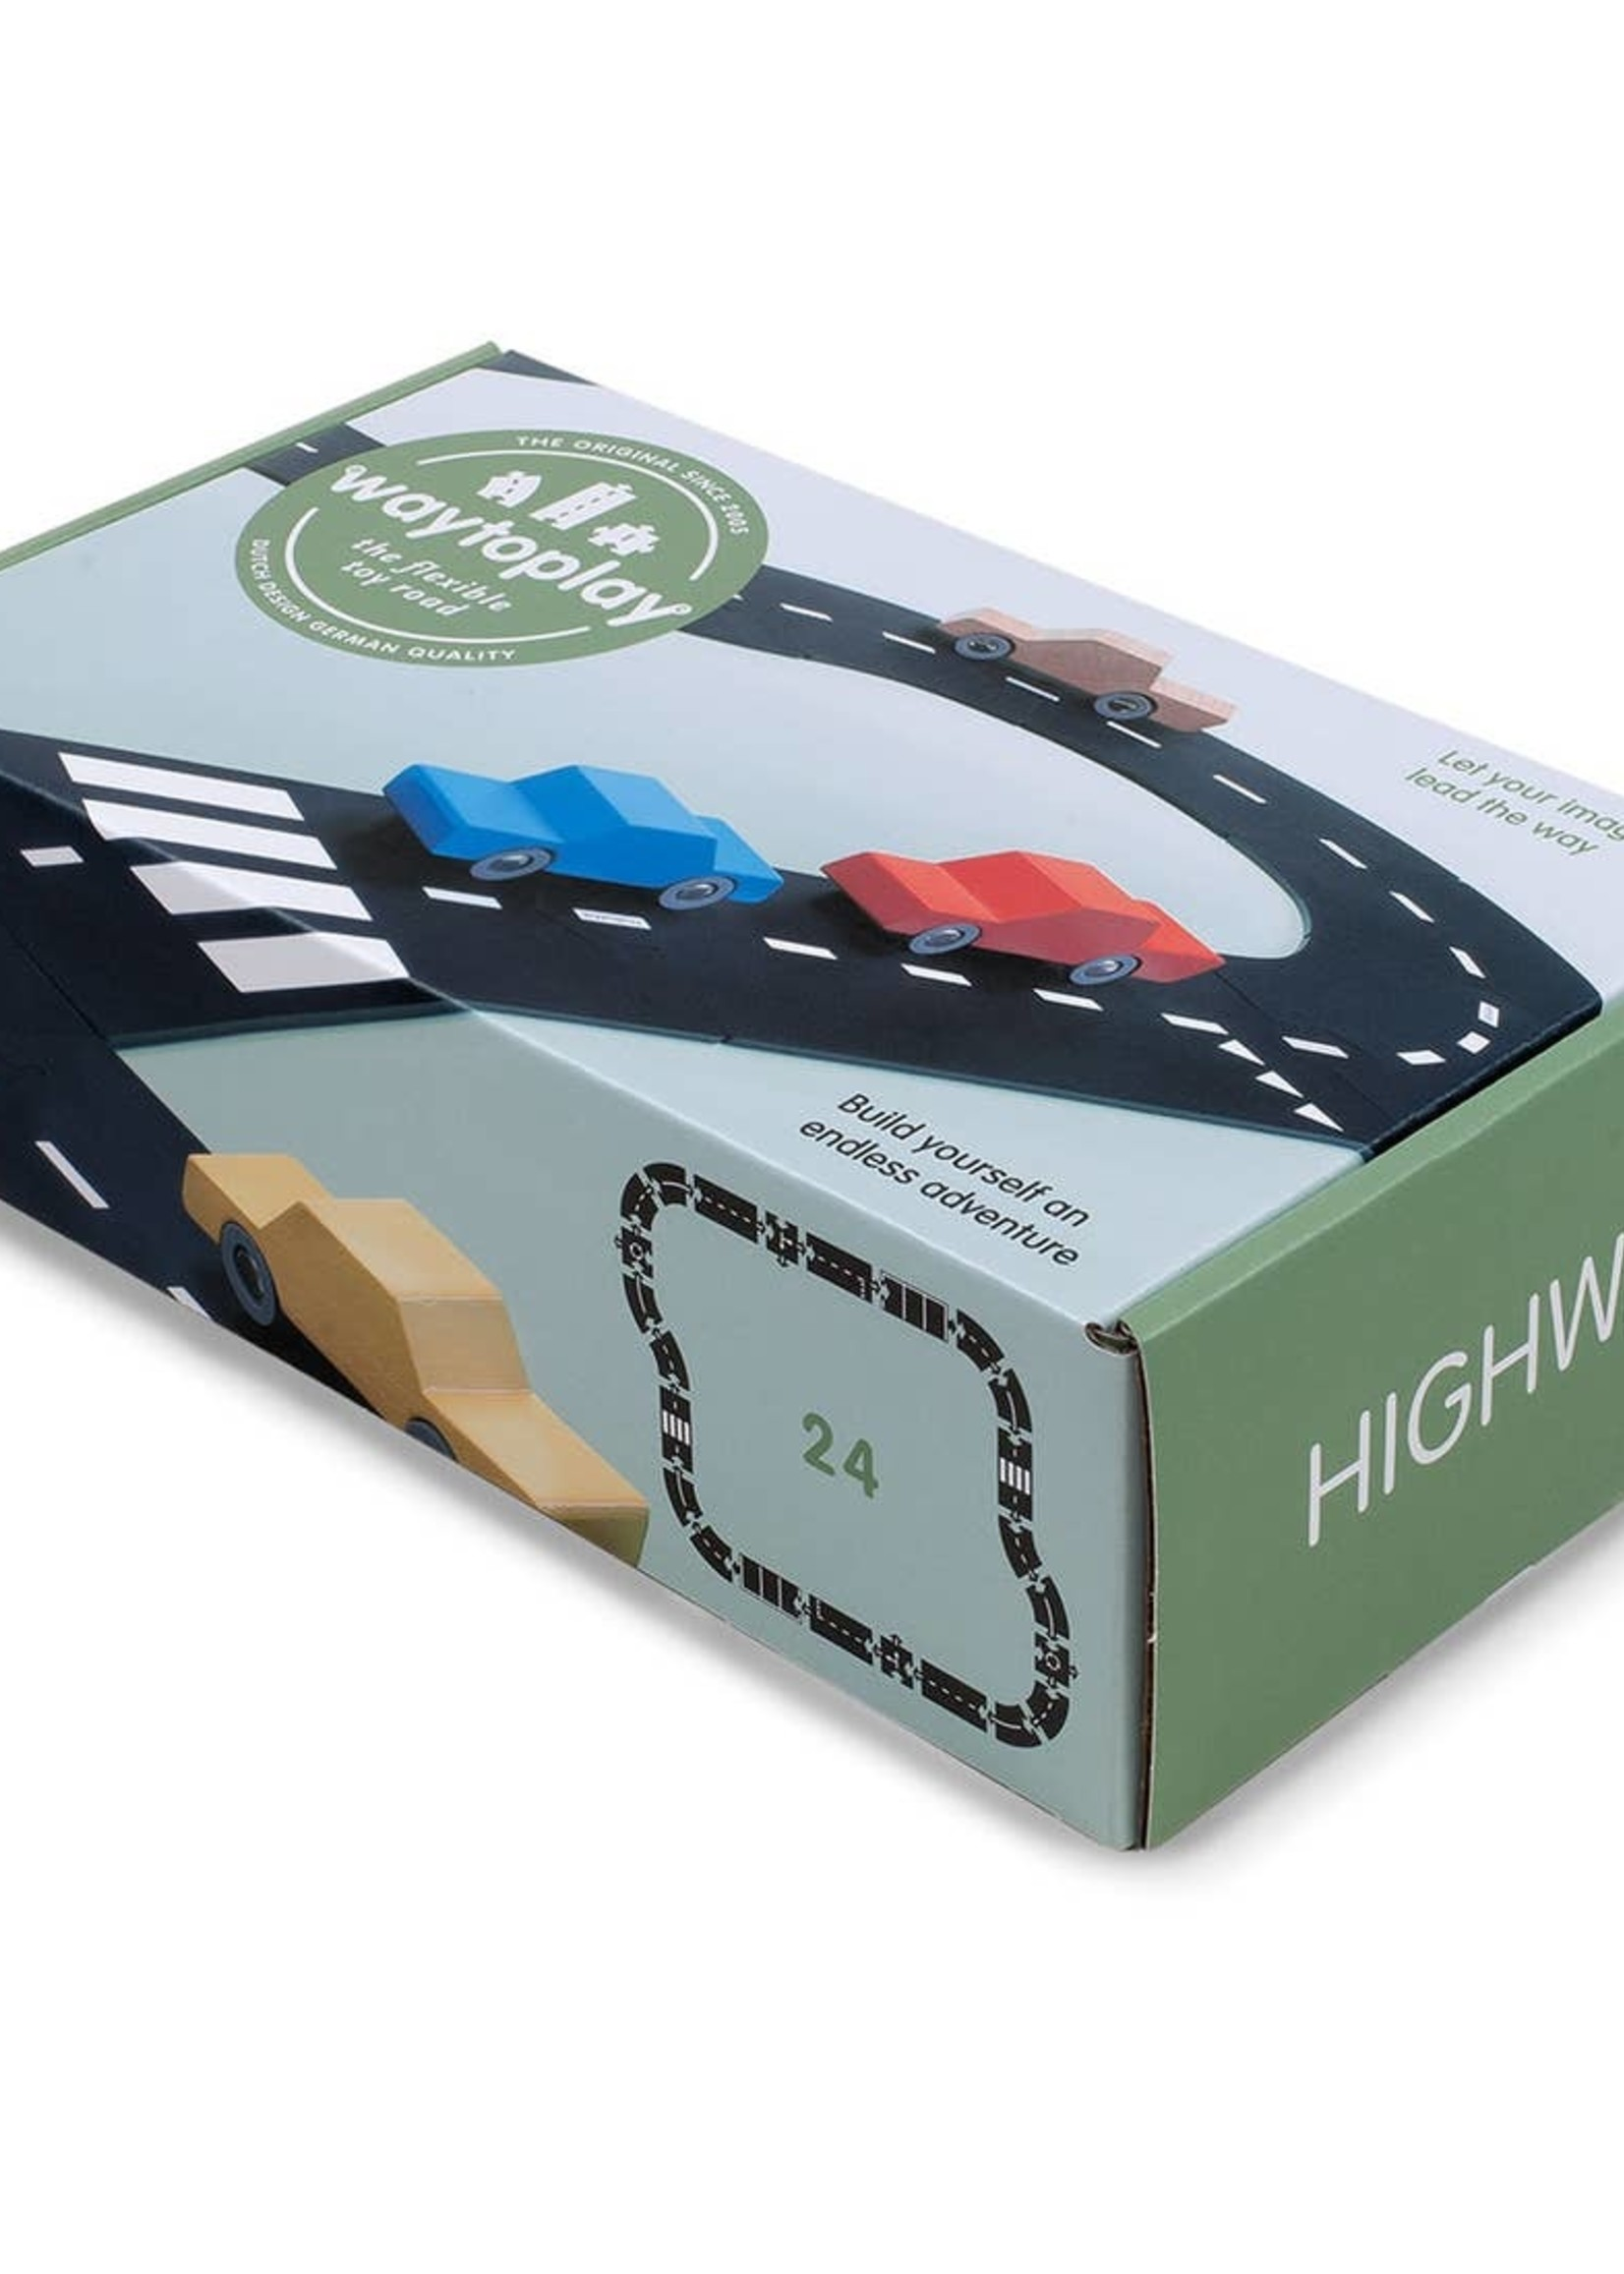 Way to play Way to play highway road set